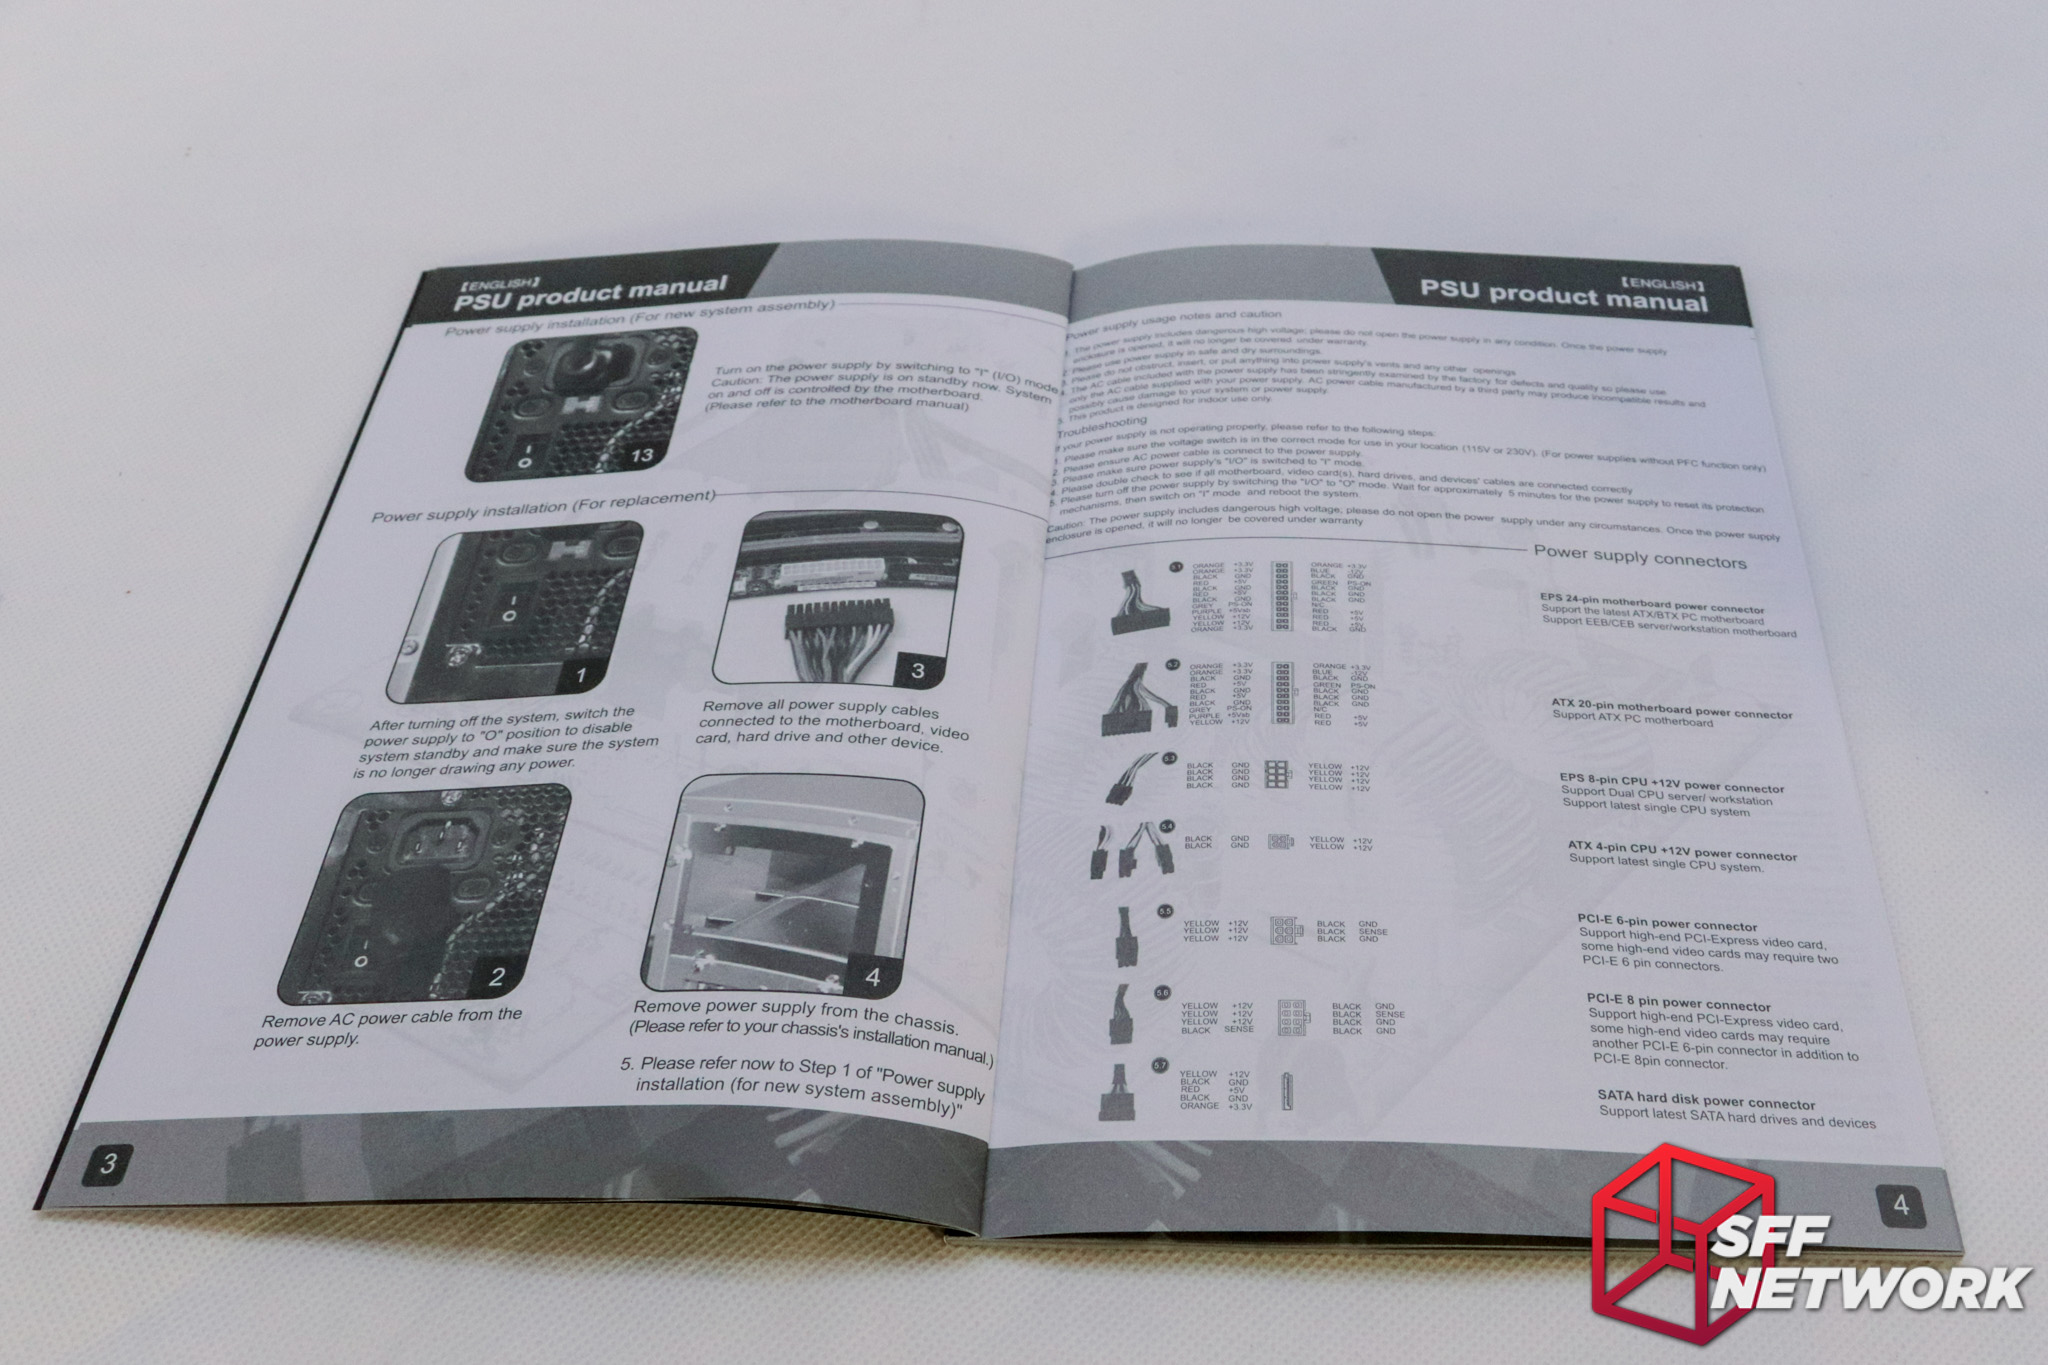 An In Depth Look At Silverstones Nightjar Nj450 Sxl Small Form Wiring Language Book The Second Manual Is A Multi Guide To Installation